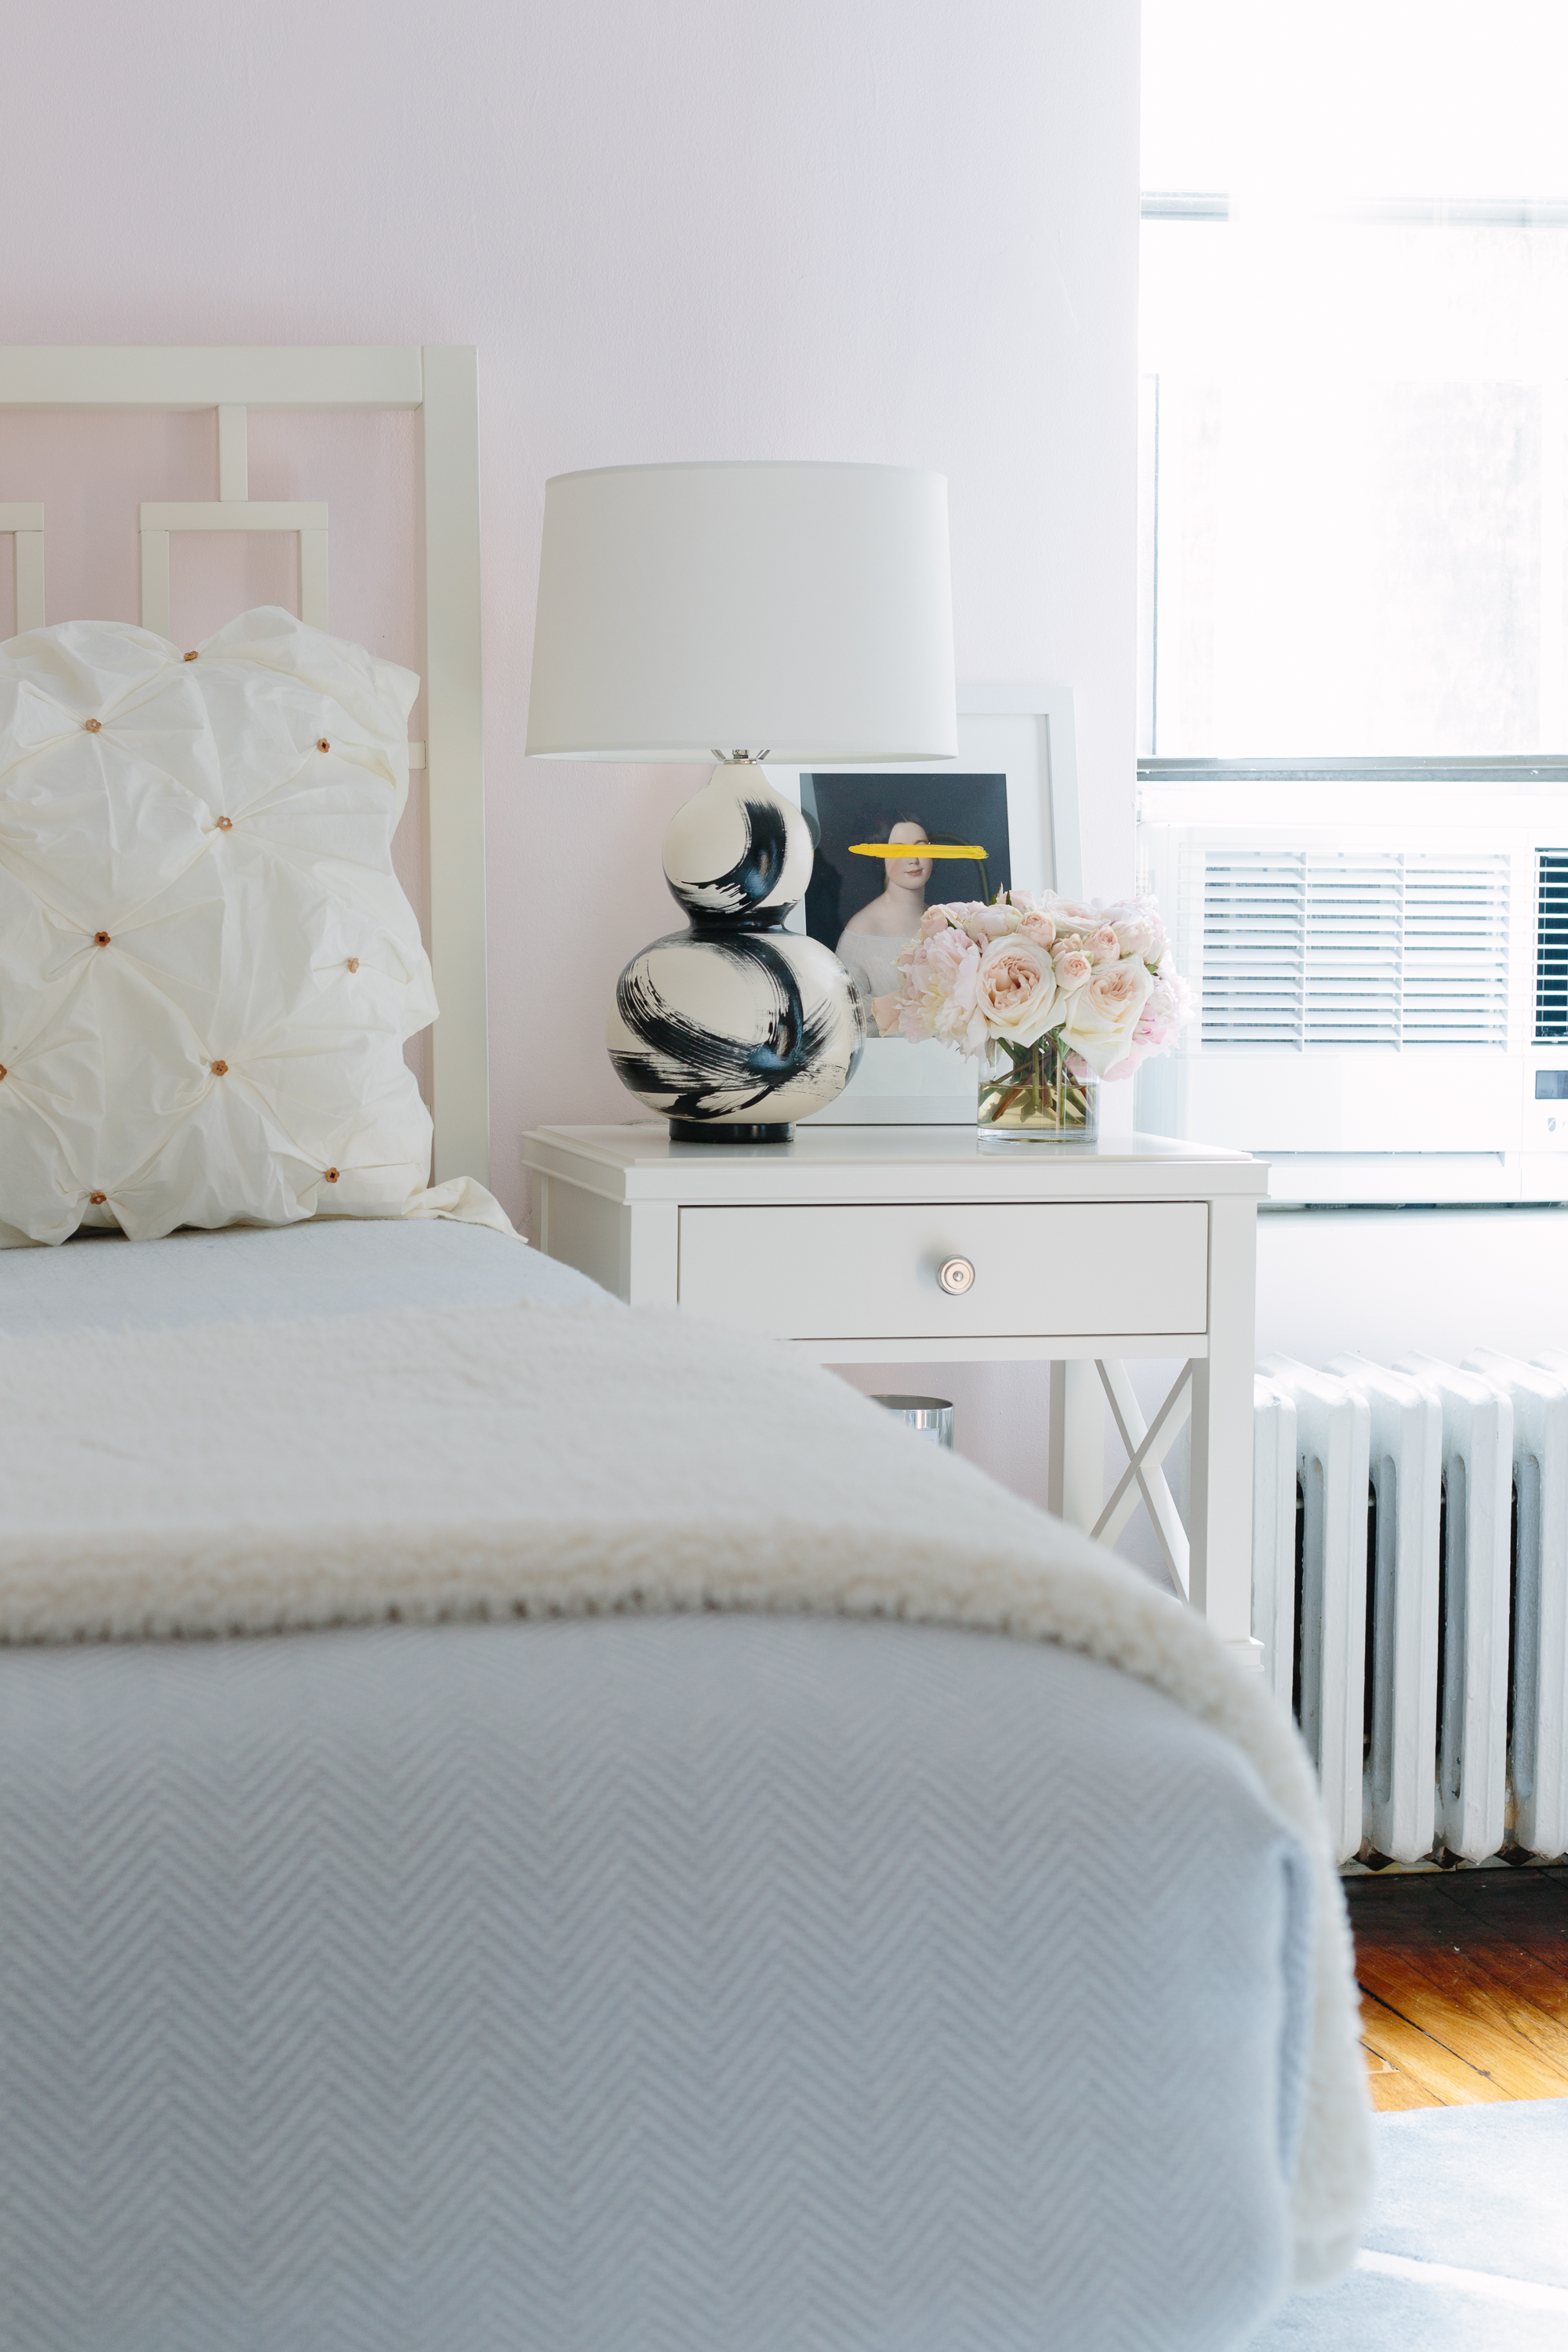 Jana Bek brushstroke lamp in black sits on a Pottery Barn nightstand in a New York City bedroom